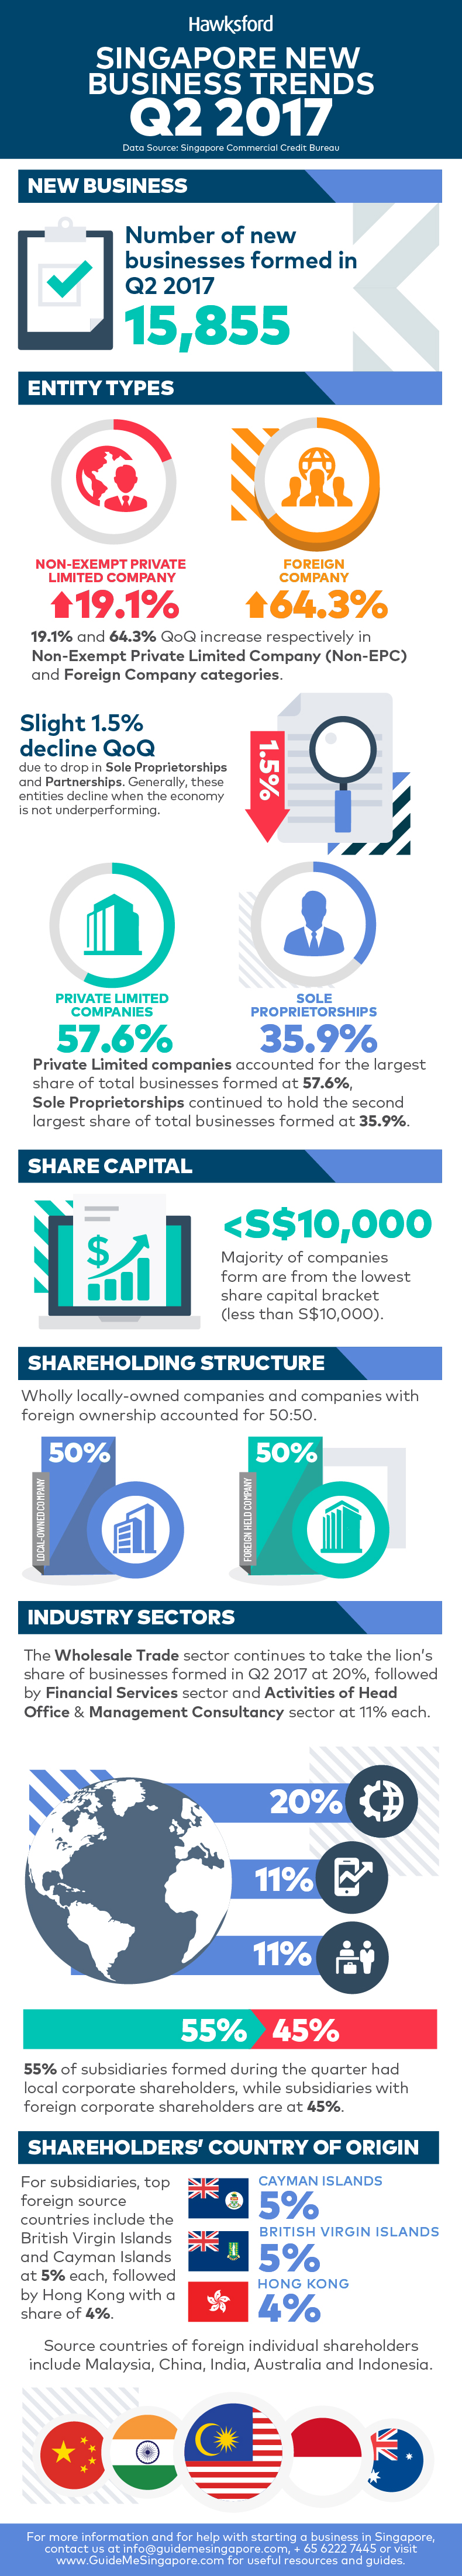 Singapore New Business Trends Q1 2017